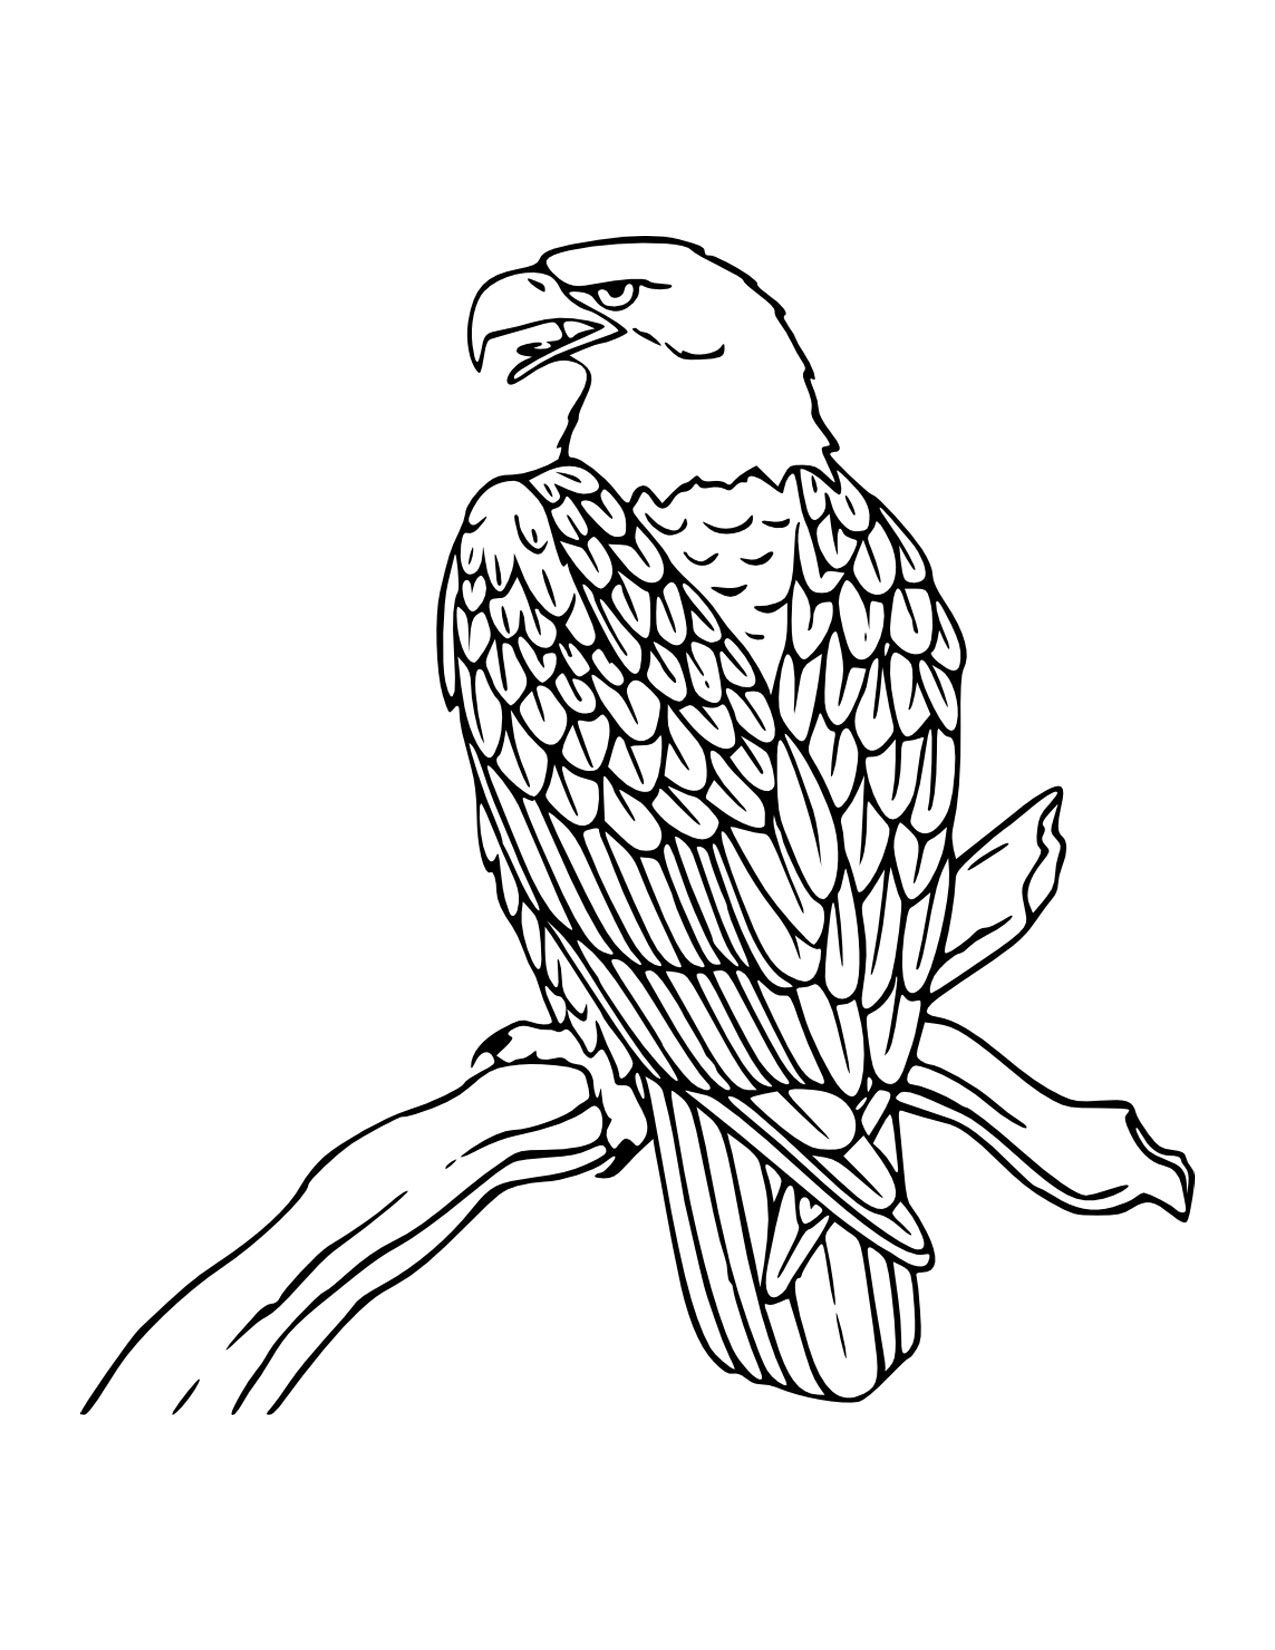 Free Printable Bald Eagle Coloring Pages For Kids Eagle Drawing